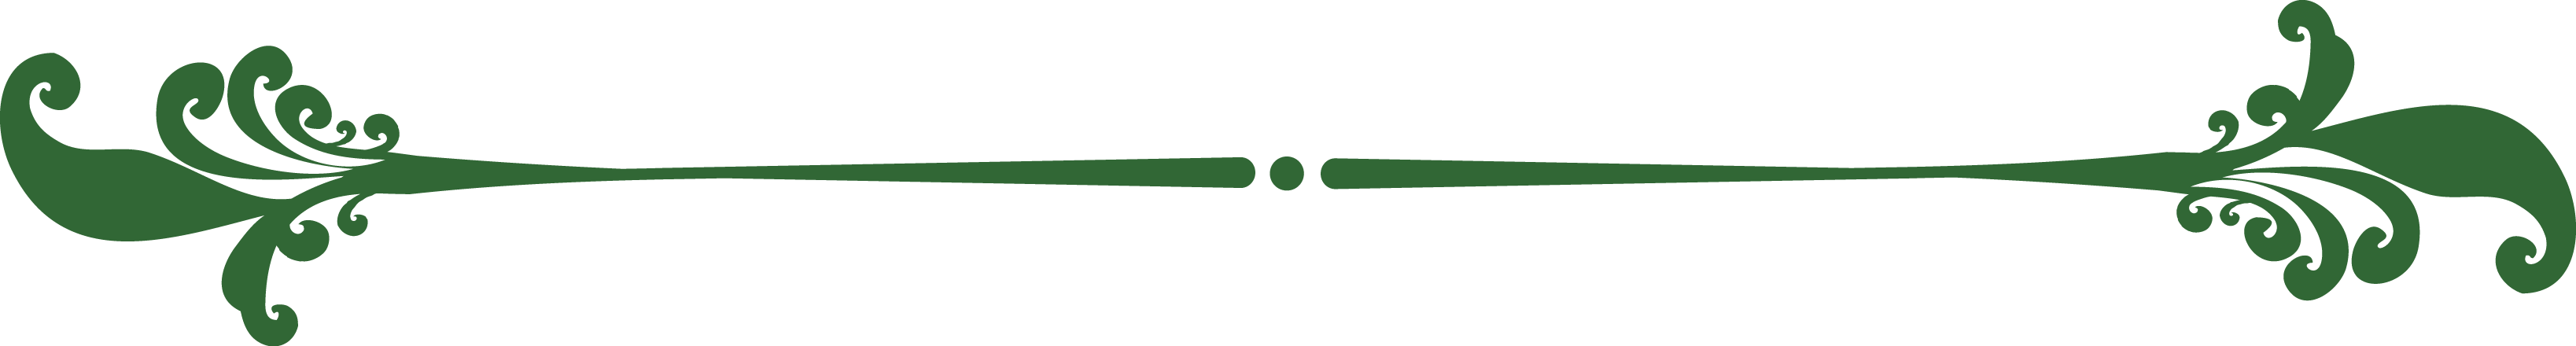 Decorative horizontal line png. Images of spacehero lines